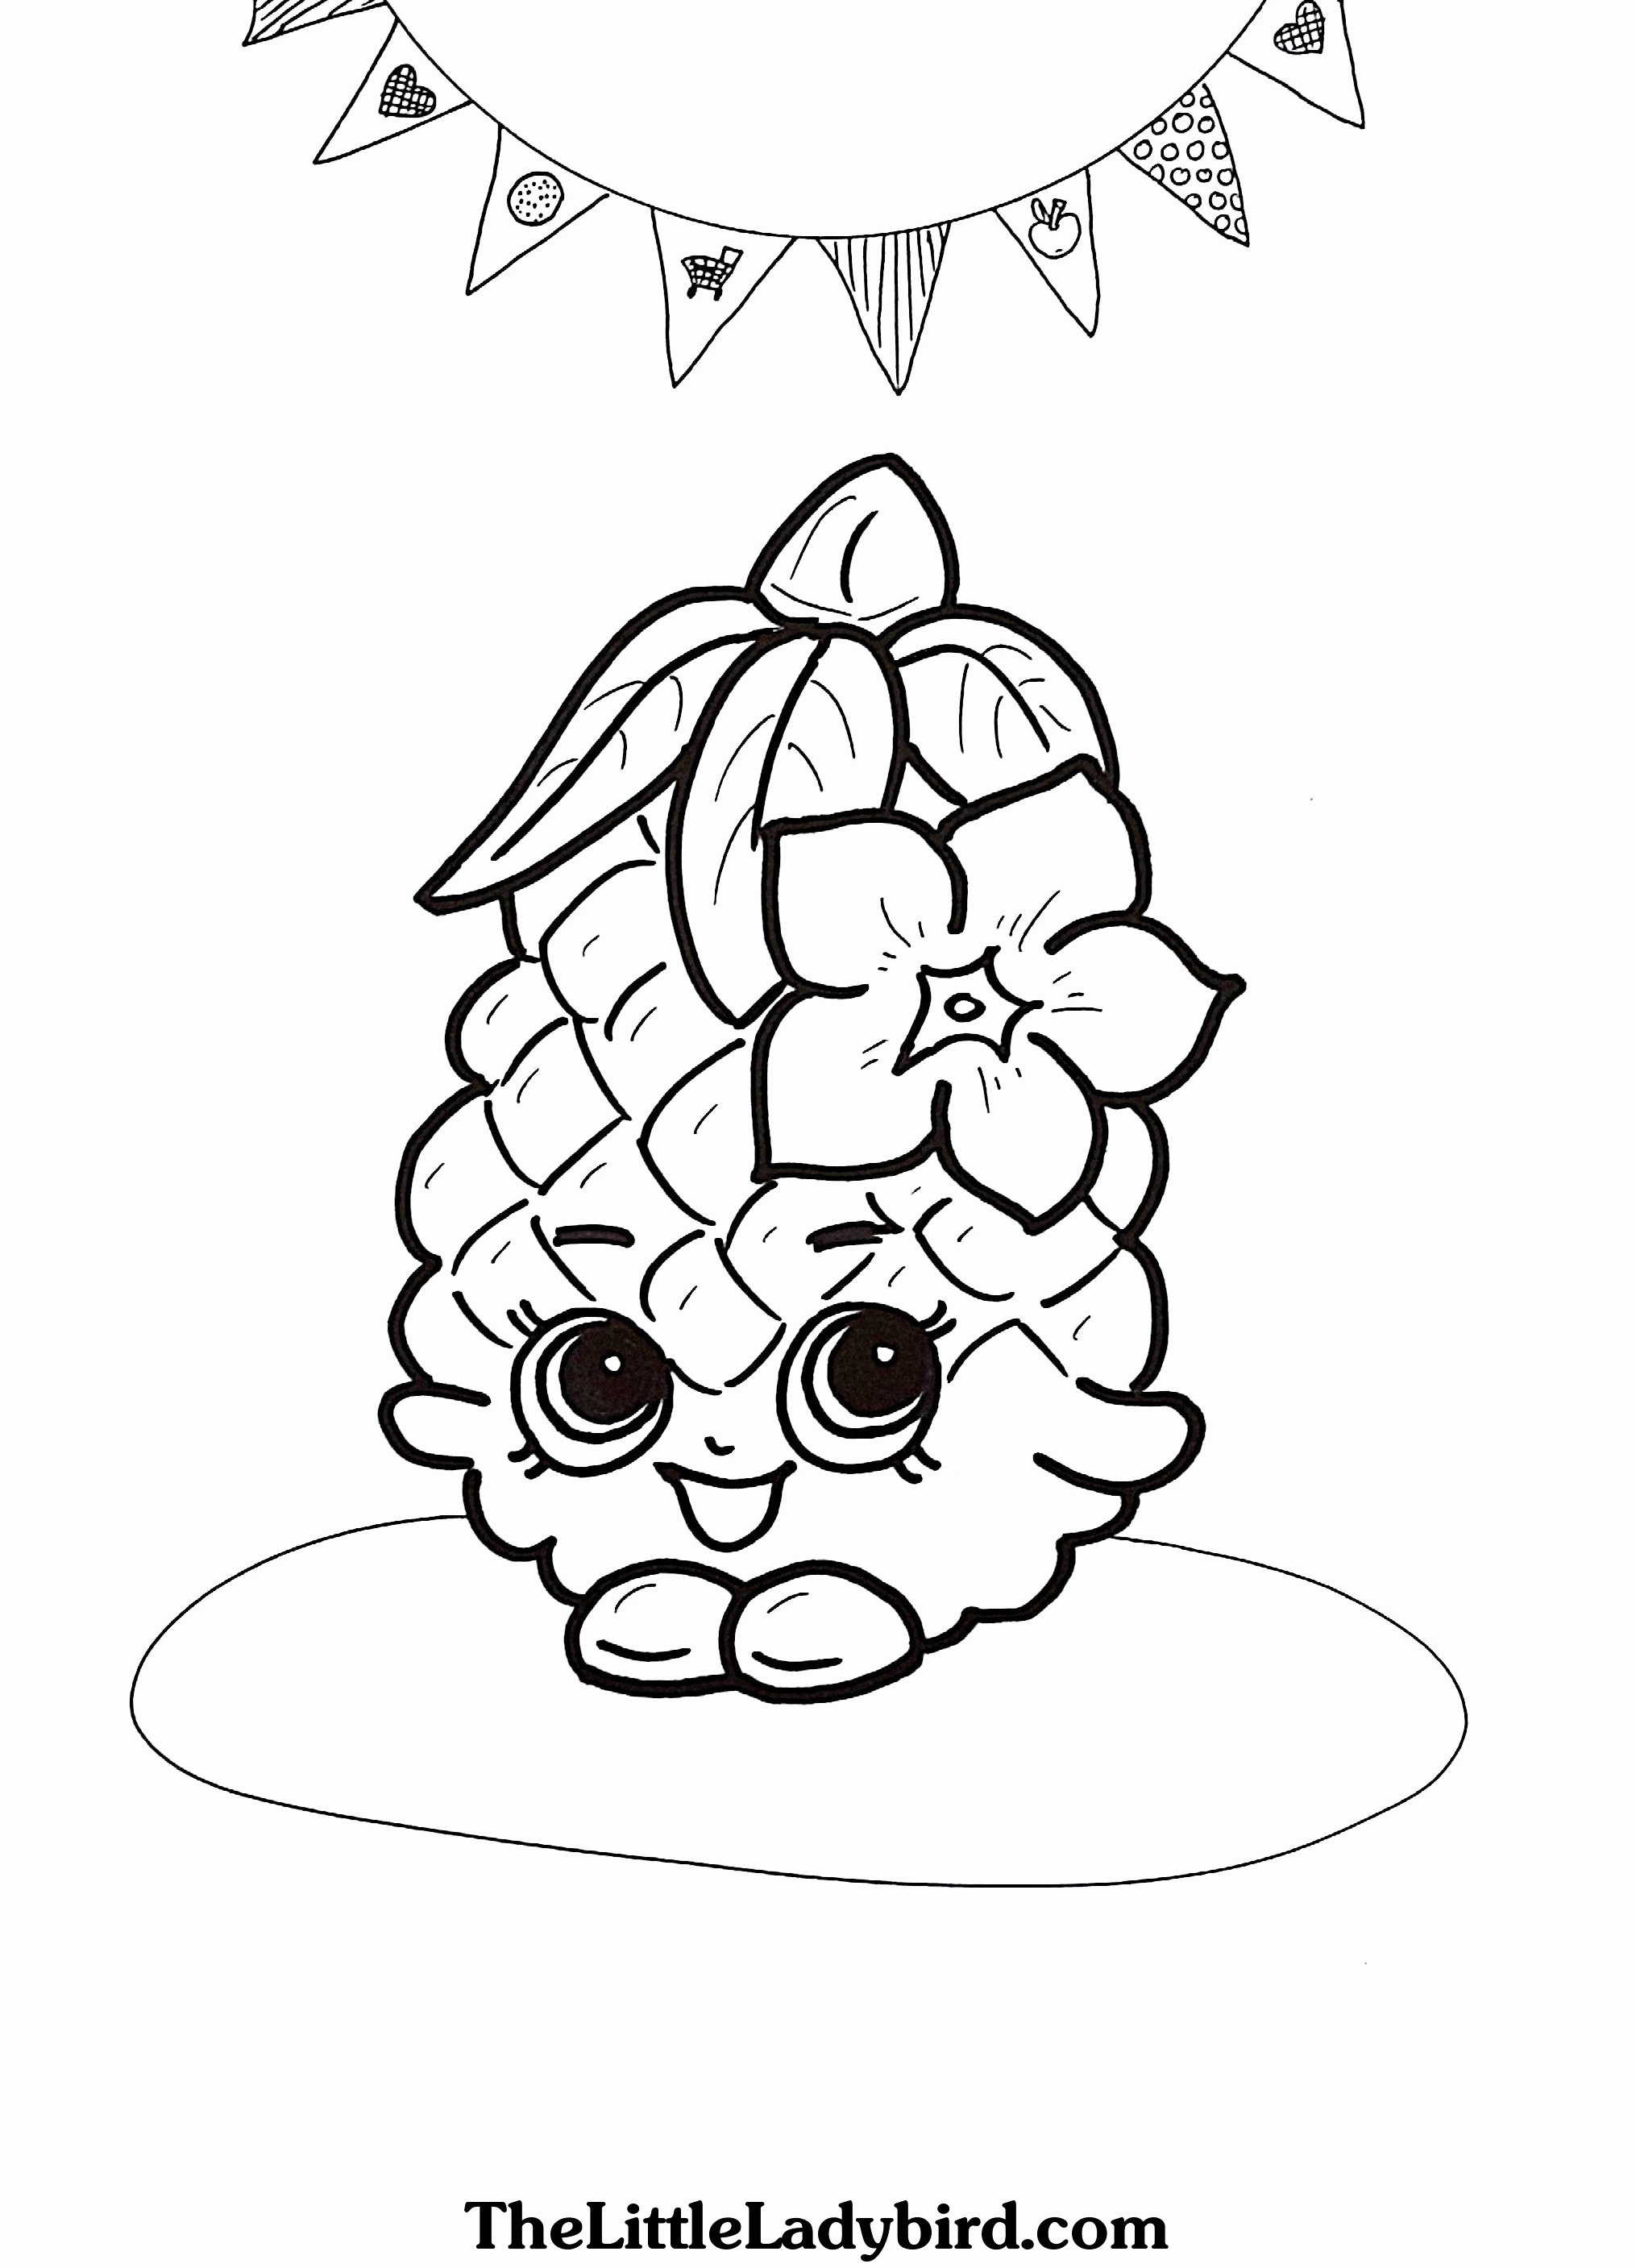 coloring pages for cars Collection-Coloring Pages Party Luau themed Coloring Pages Fresh 0d E152ce286a E15fcea5 Coloring 2-m